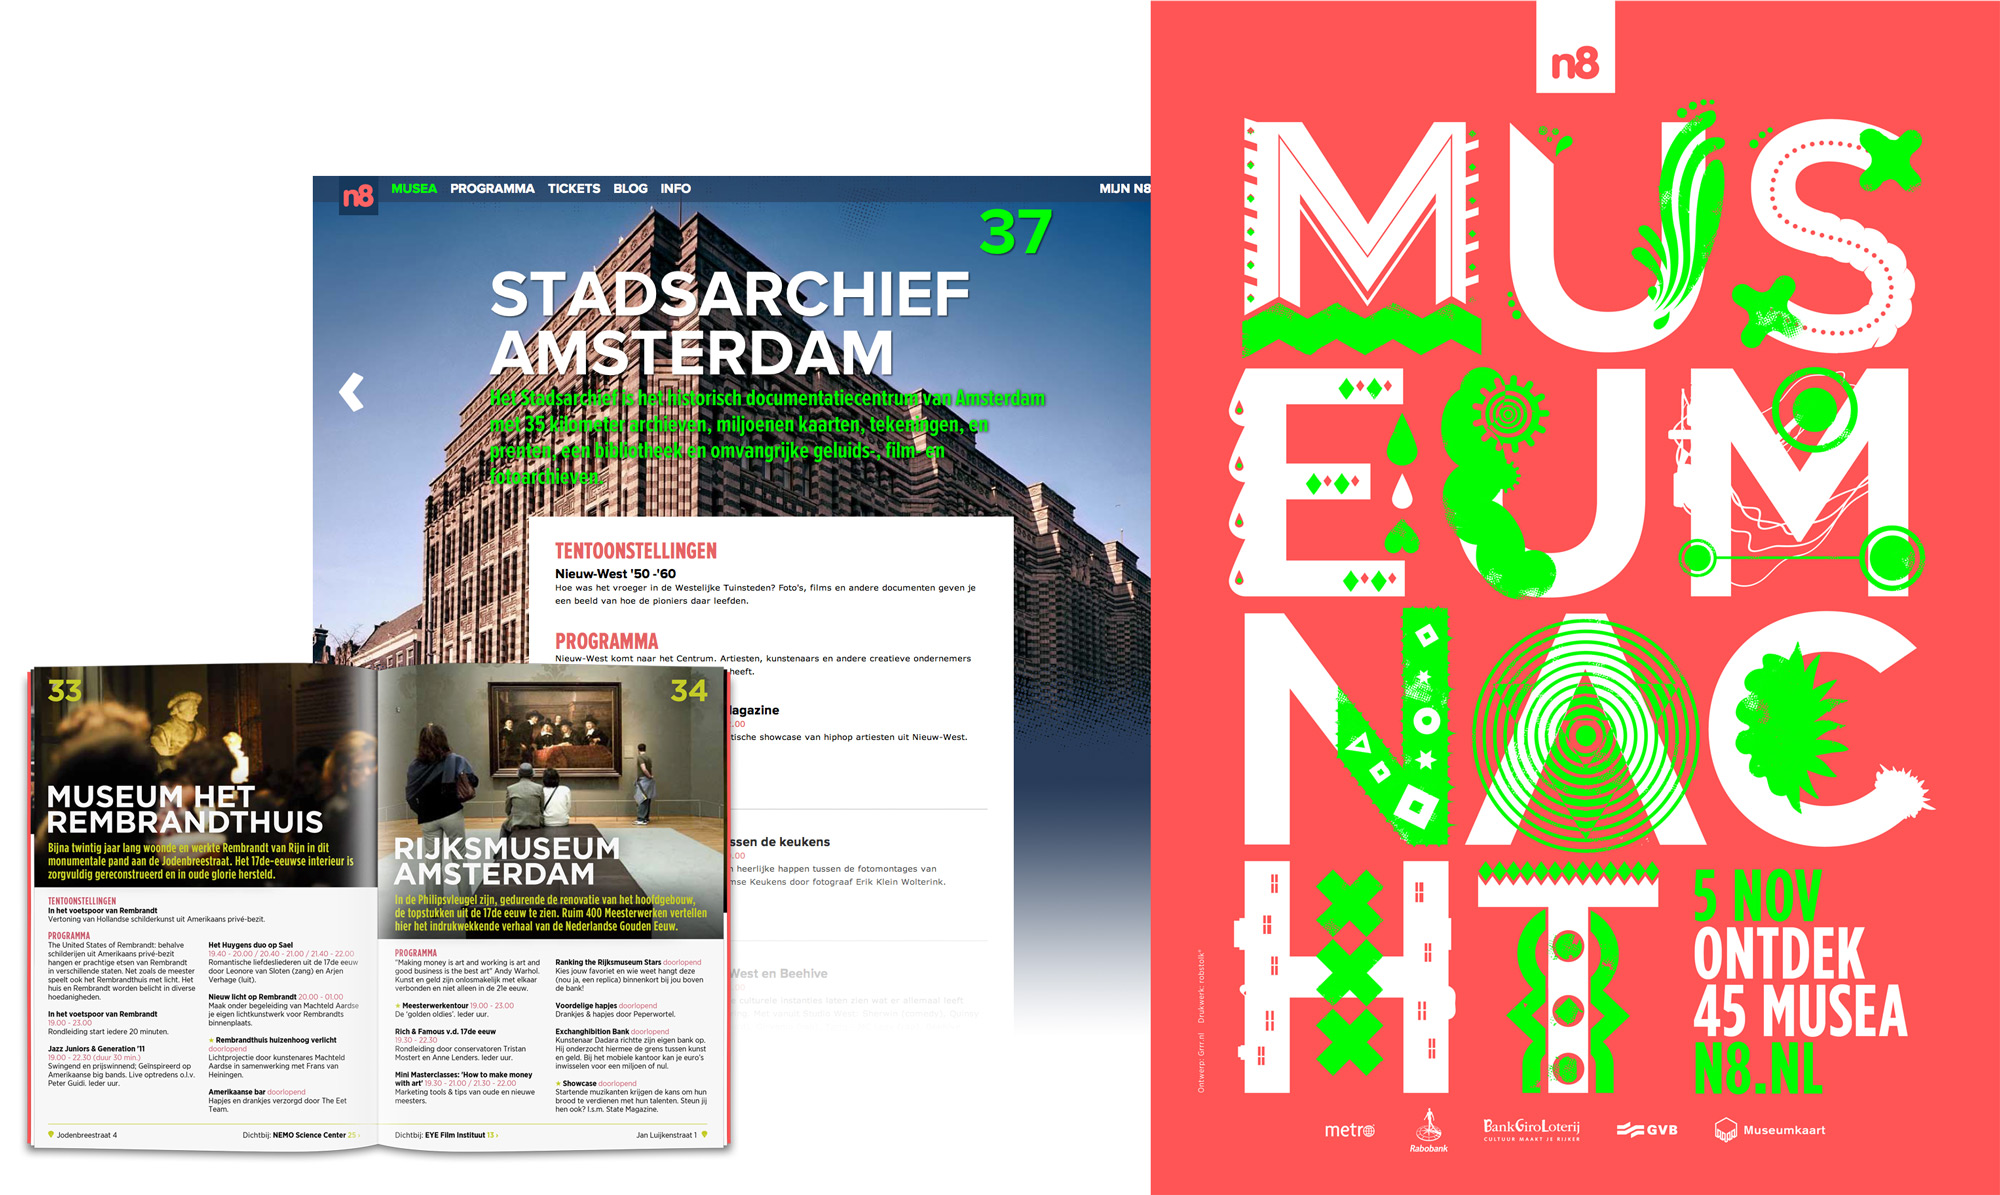 Museumnacht campagne branding